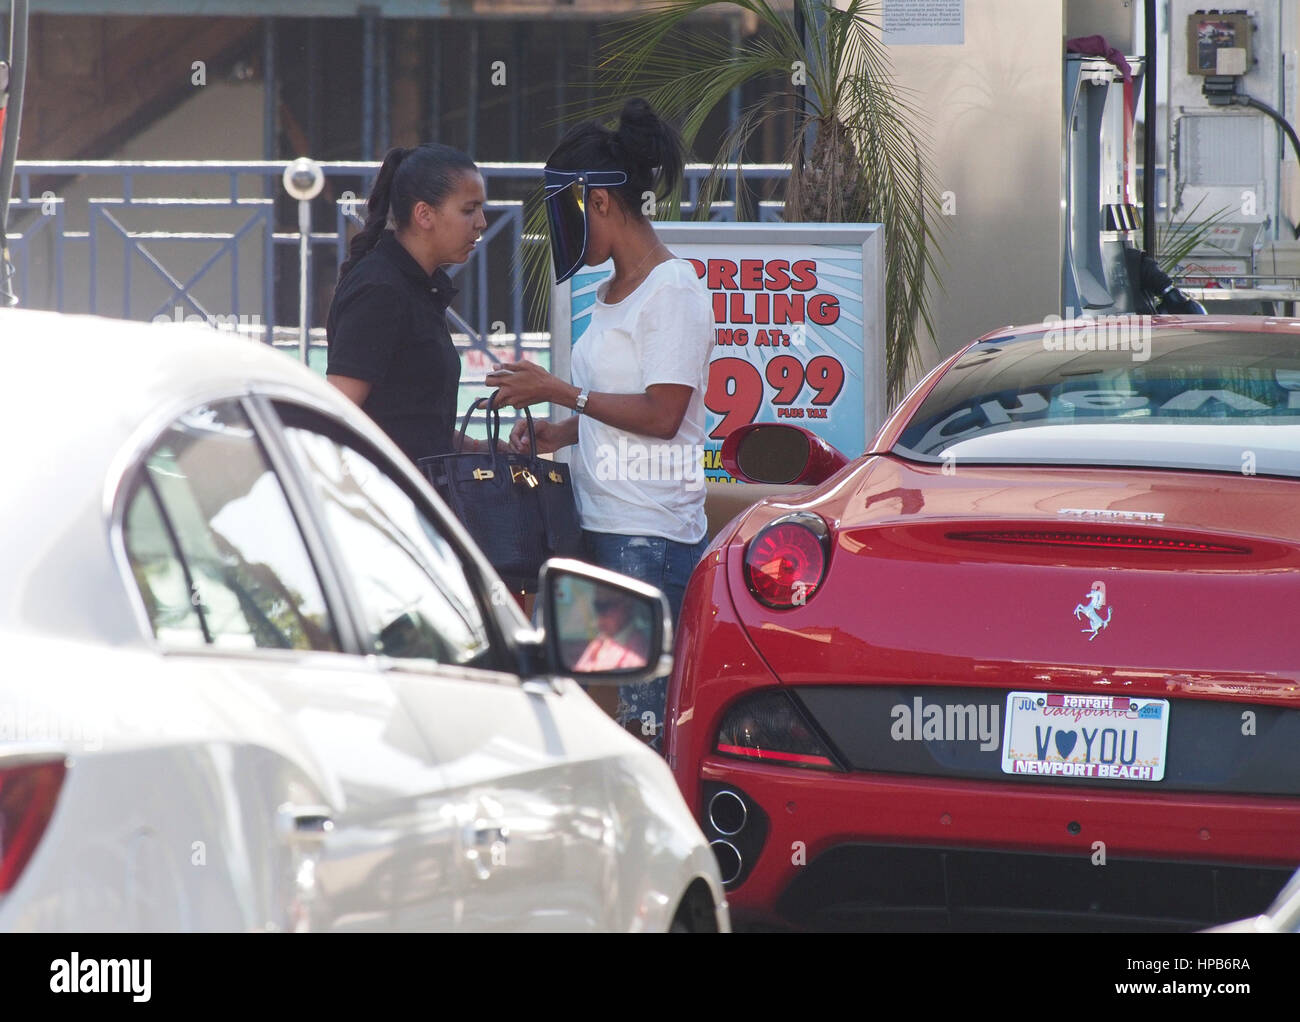 Car wash in los angeles stock photos car wash in los angeles stock v stiviano the former mistress of donald sterling walking around a car wash solutioingenieria Gallery